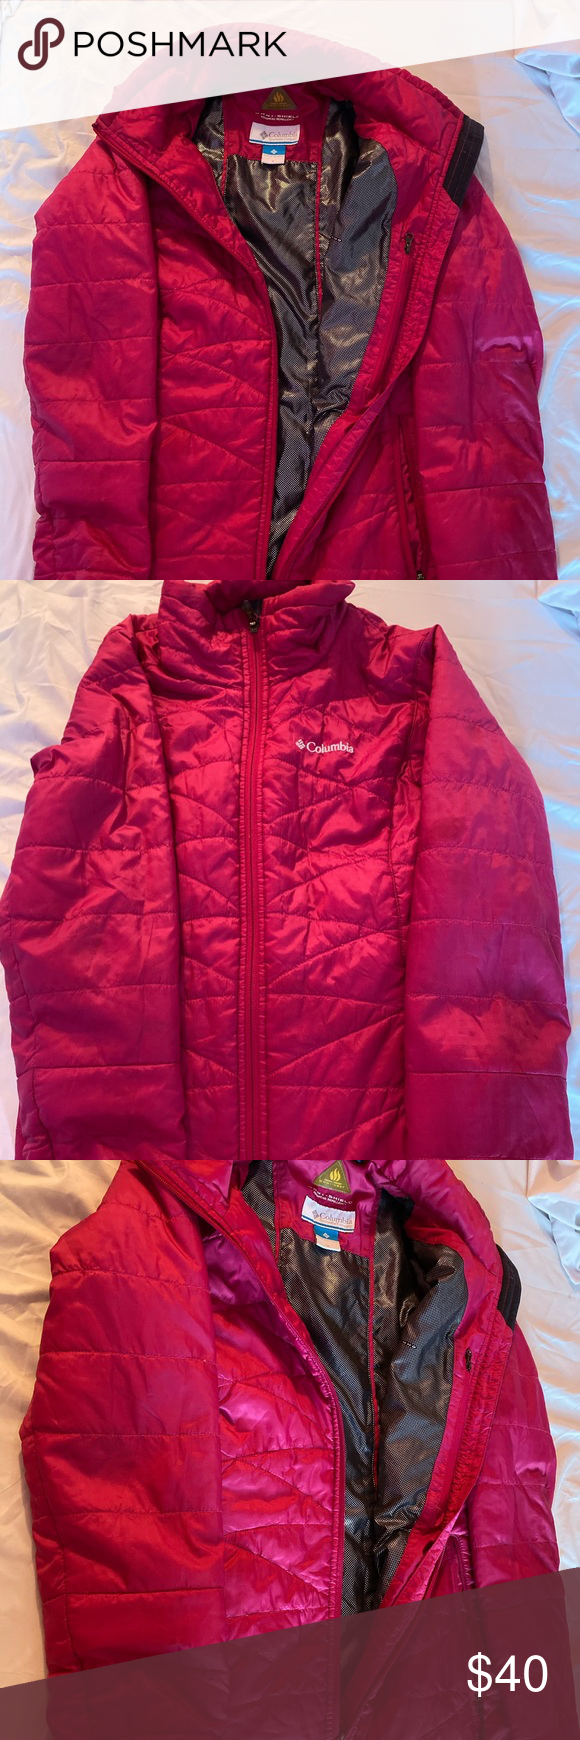 Pink Columbia Jacket | Columbia jacket, Jackets, Clothes ...